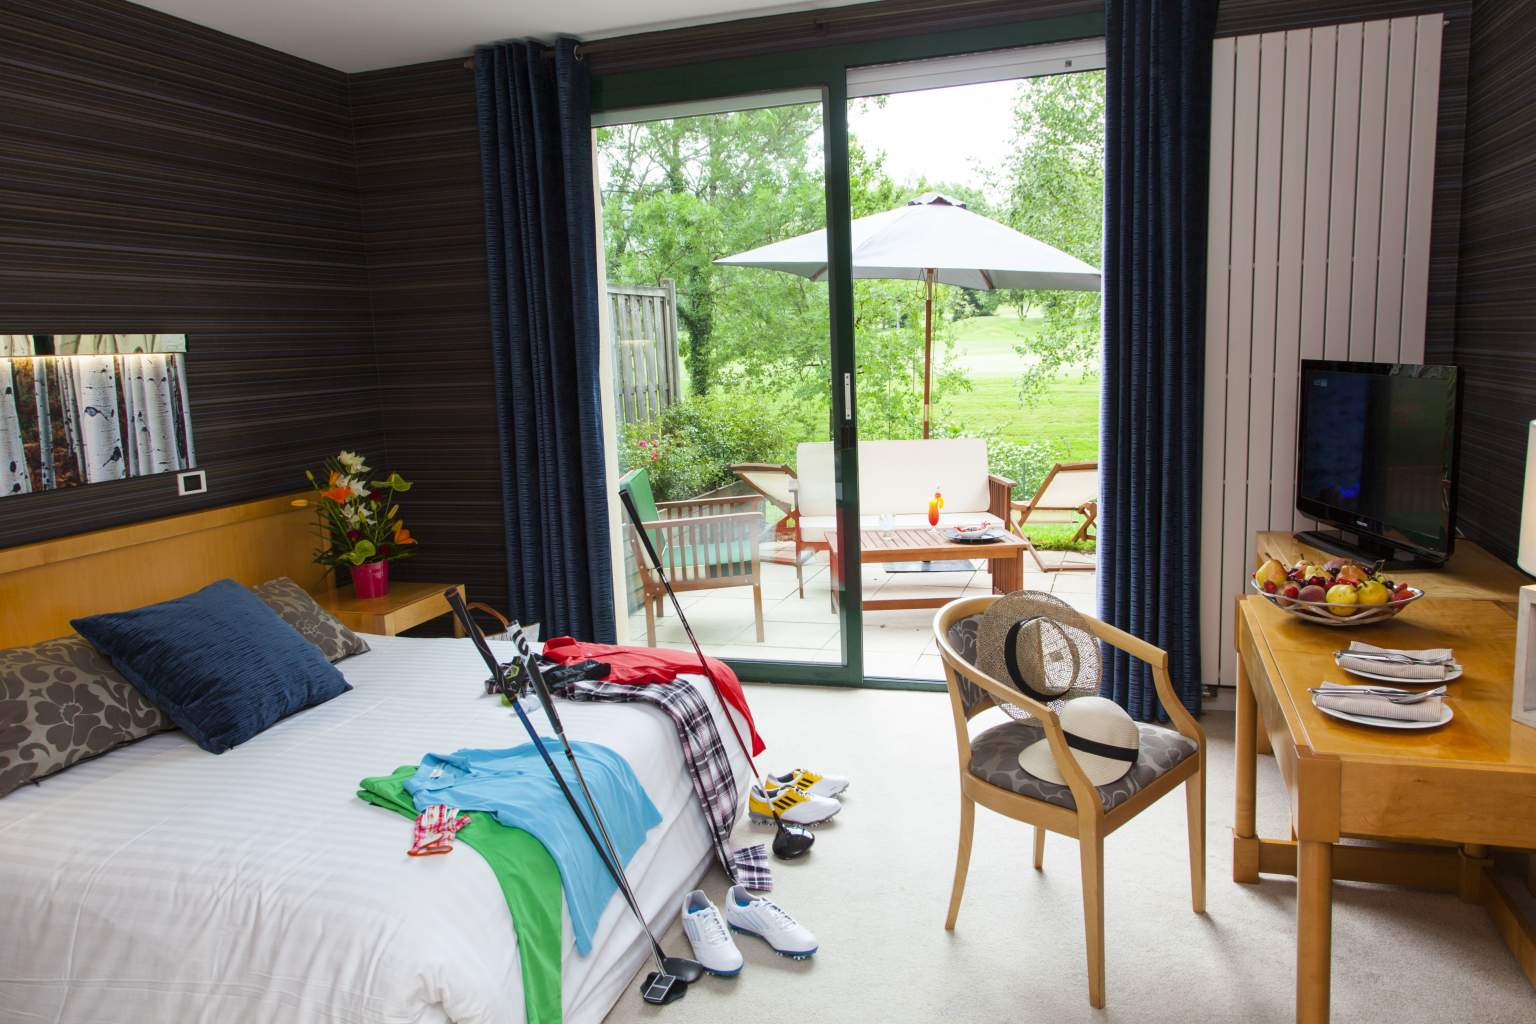 Room with window and golf equipment